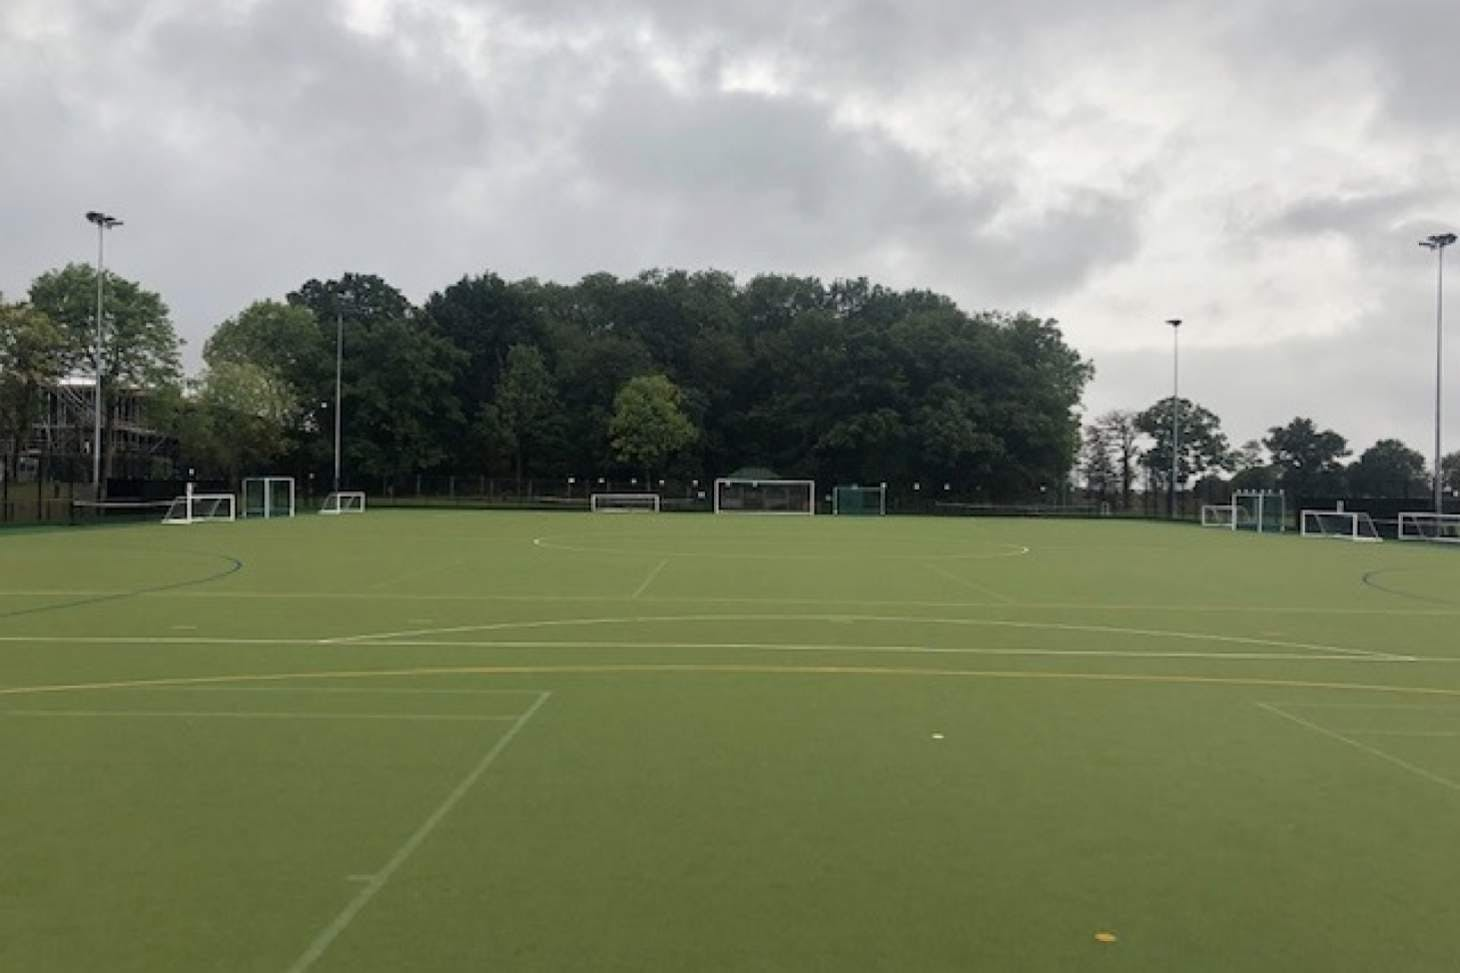 Beaumont School 9 a side | Astroturf football pitch